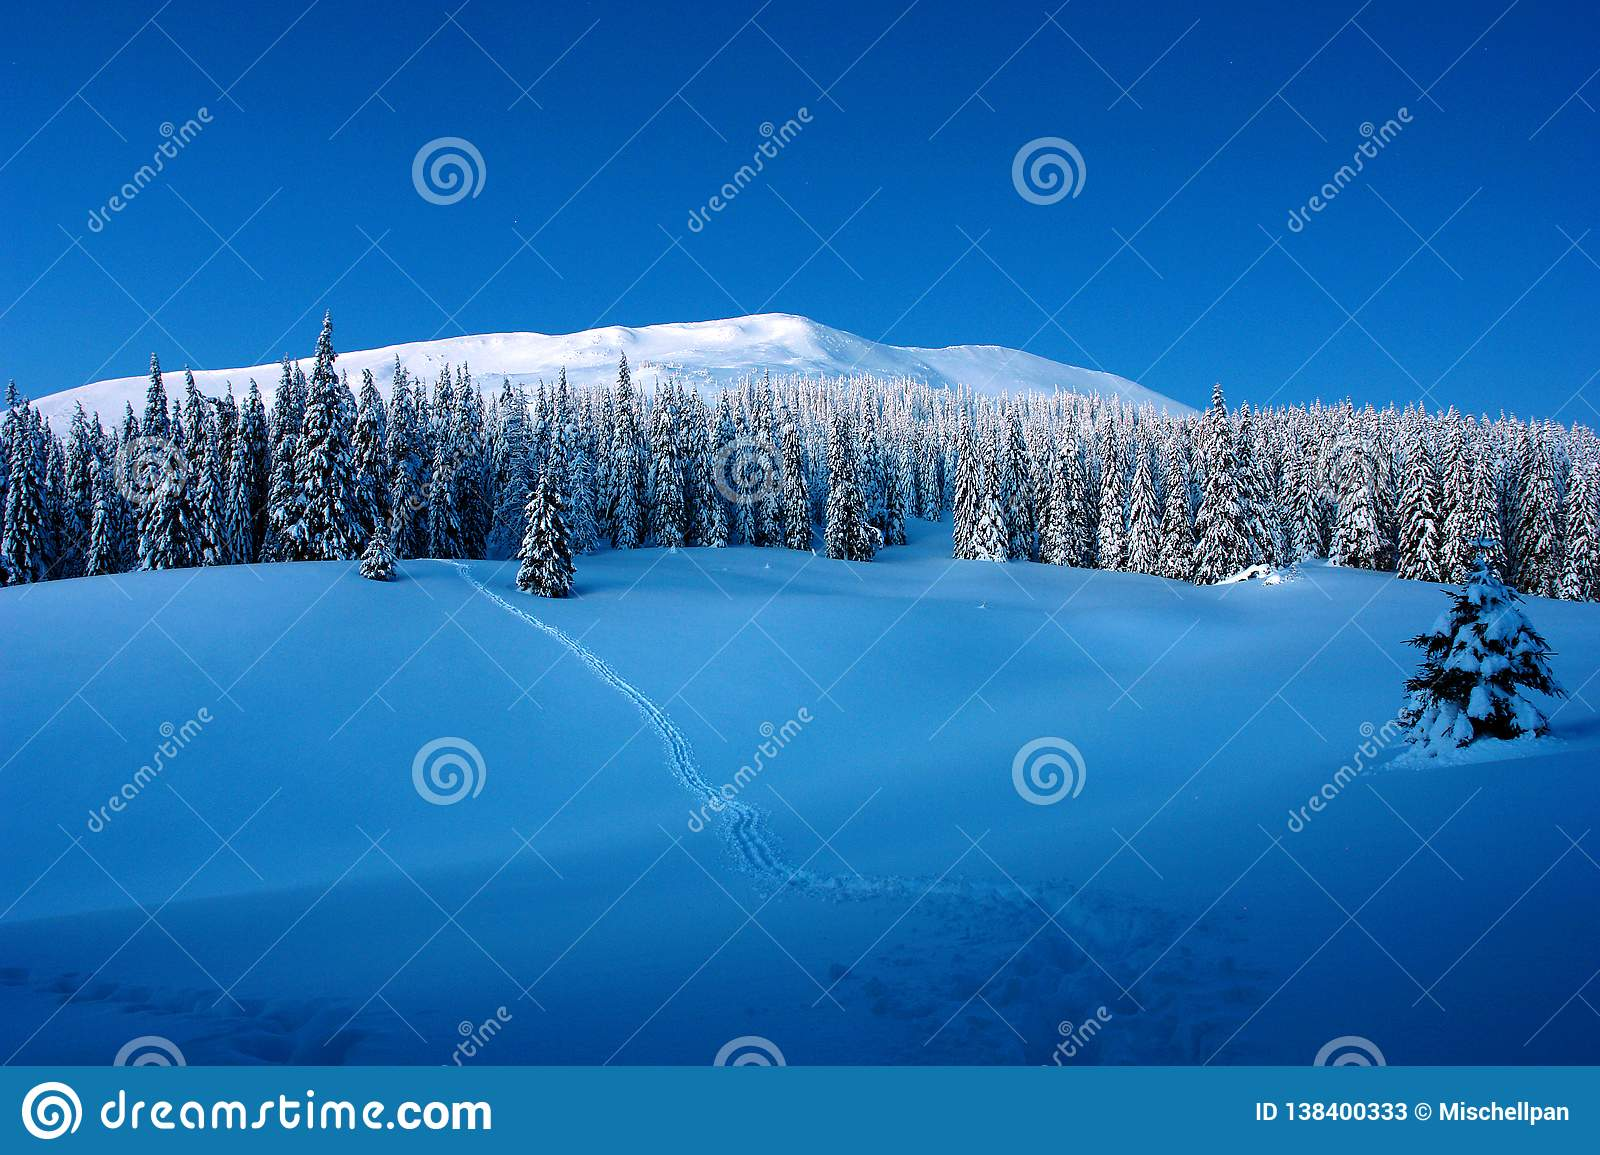 Sunny day in the winter mountains